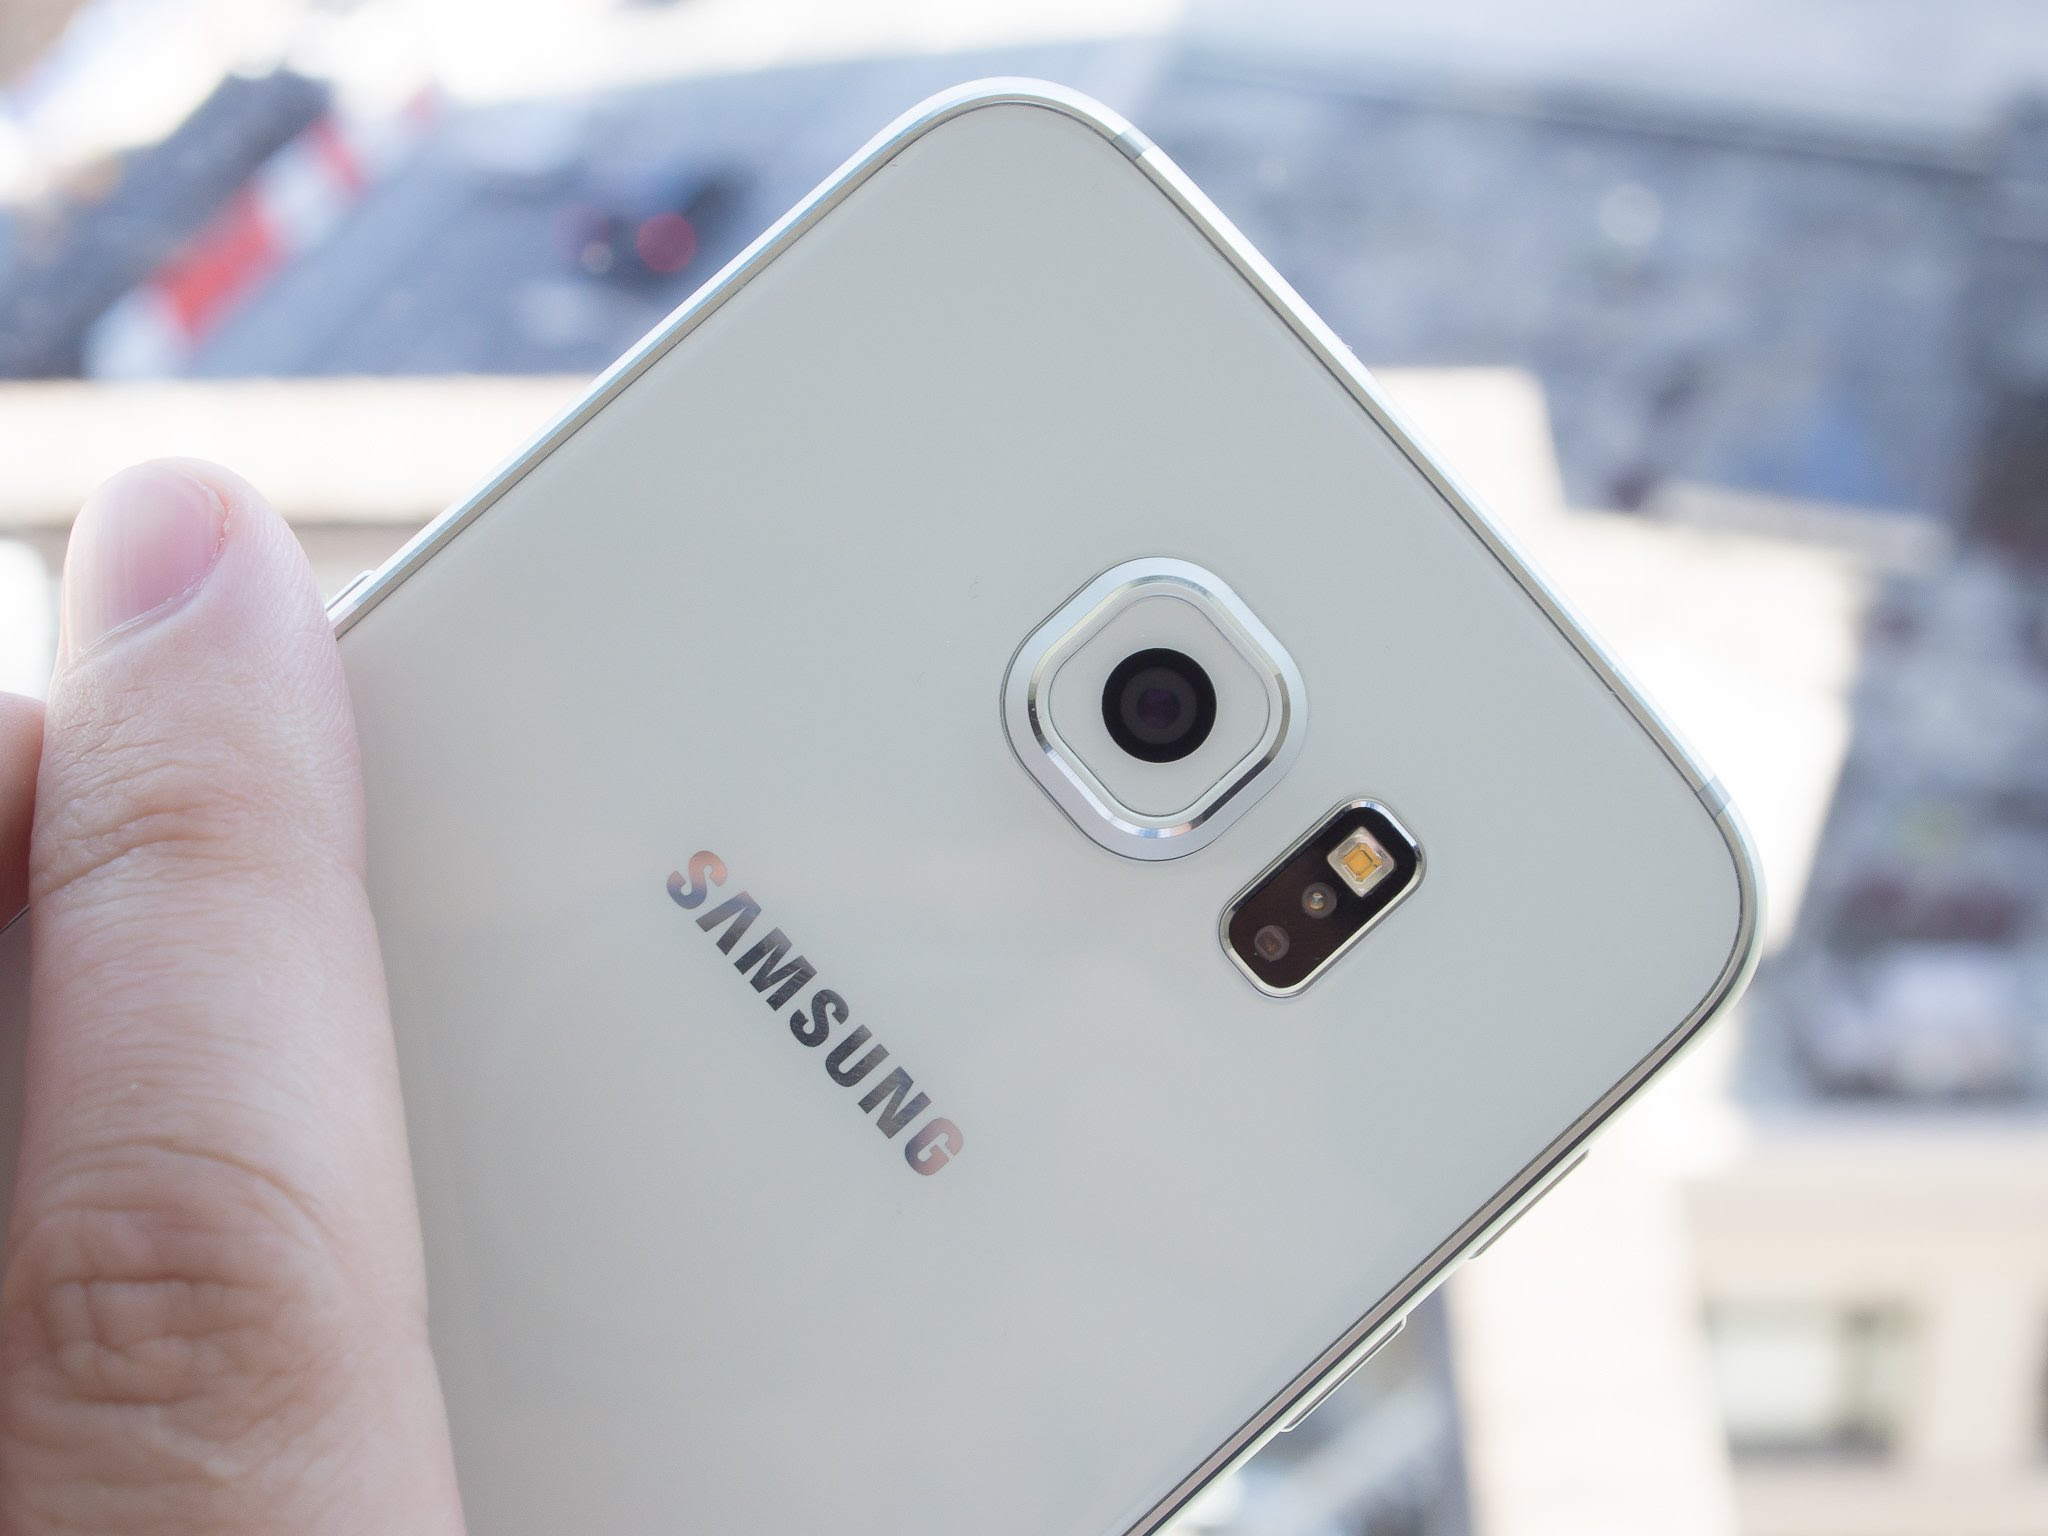 http://www.androidcentral.com/sites/androidcentral.com/files/styles/xlarge_wm_brw/public/article_images/2015/04/galaxy-s6-camera-back-angle-hand.jpg?itok=LyBO_C_1